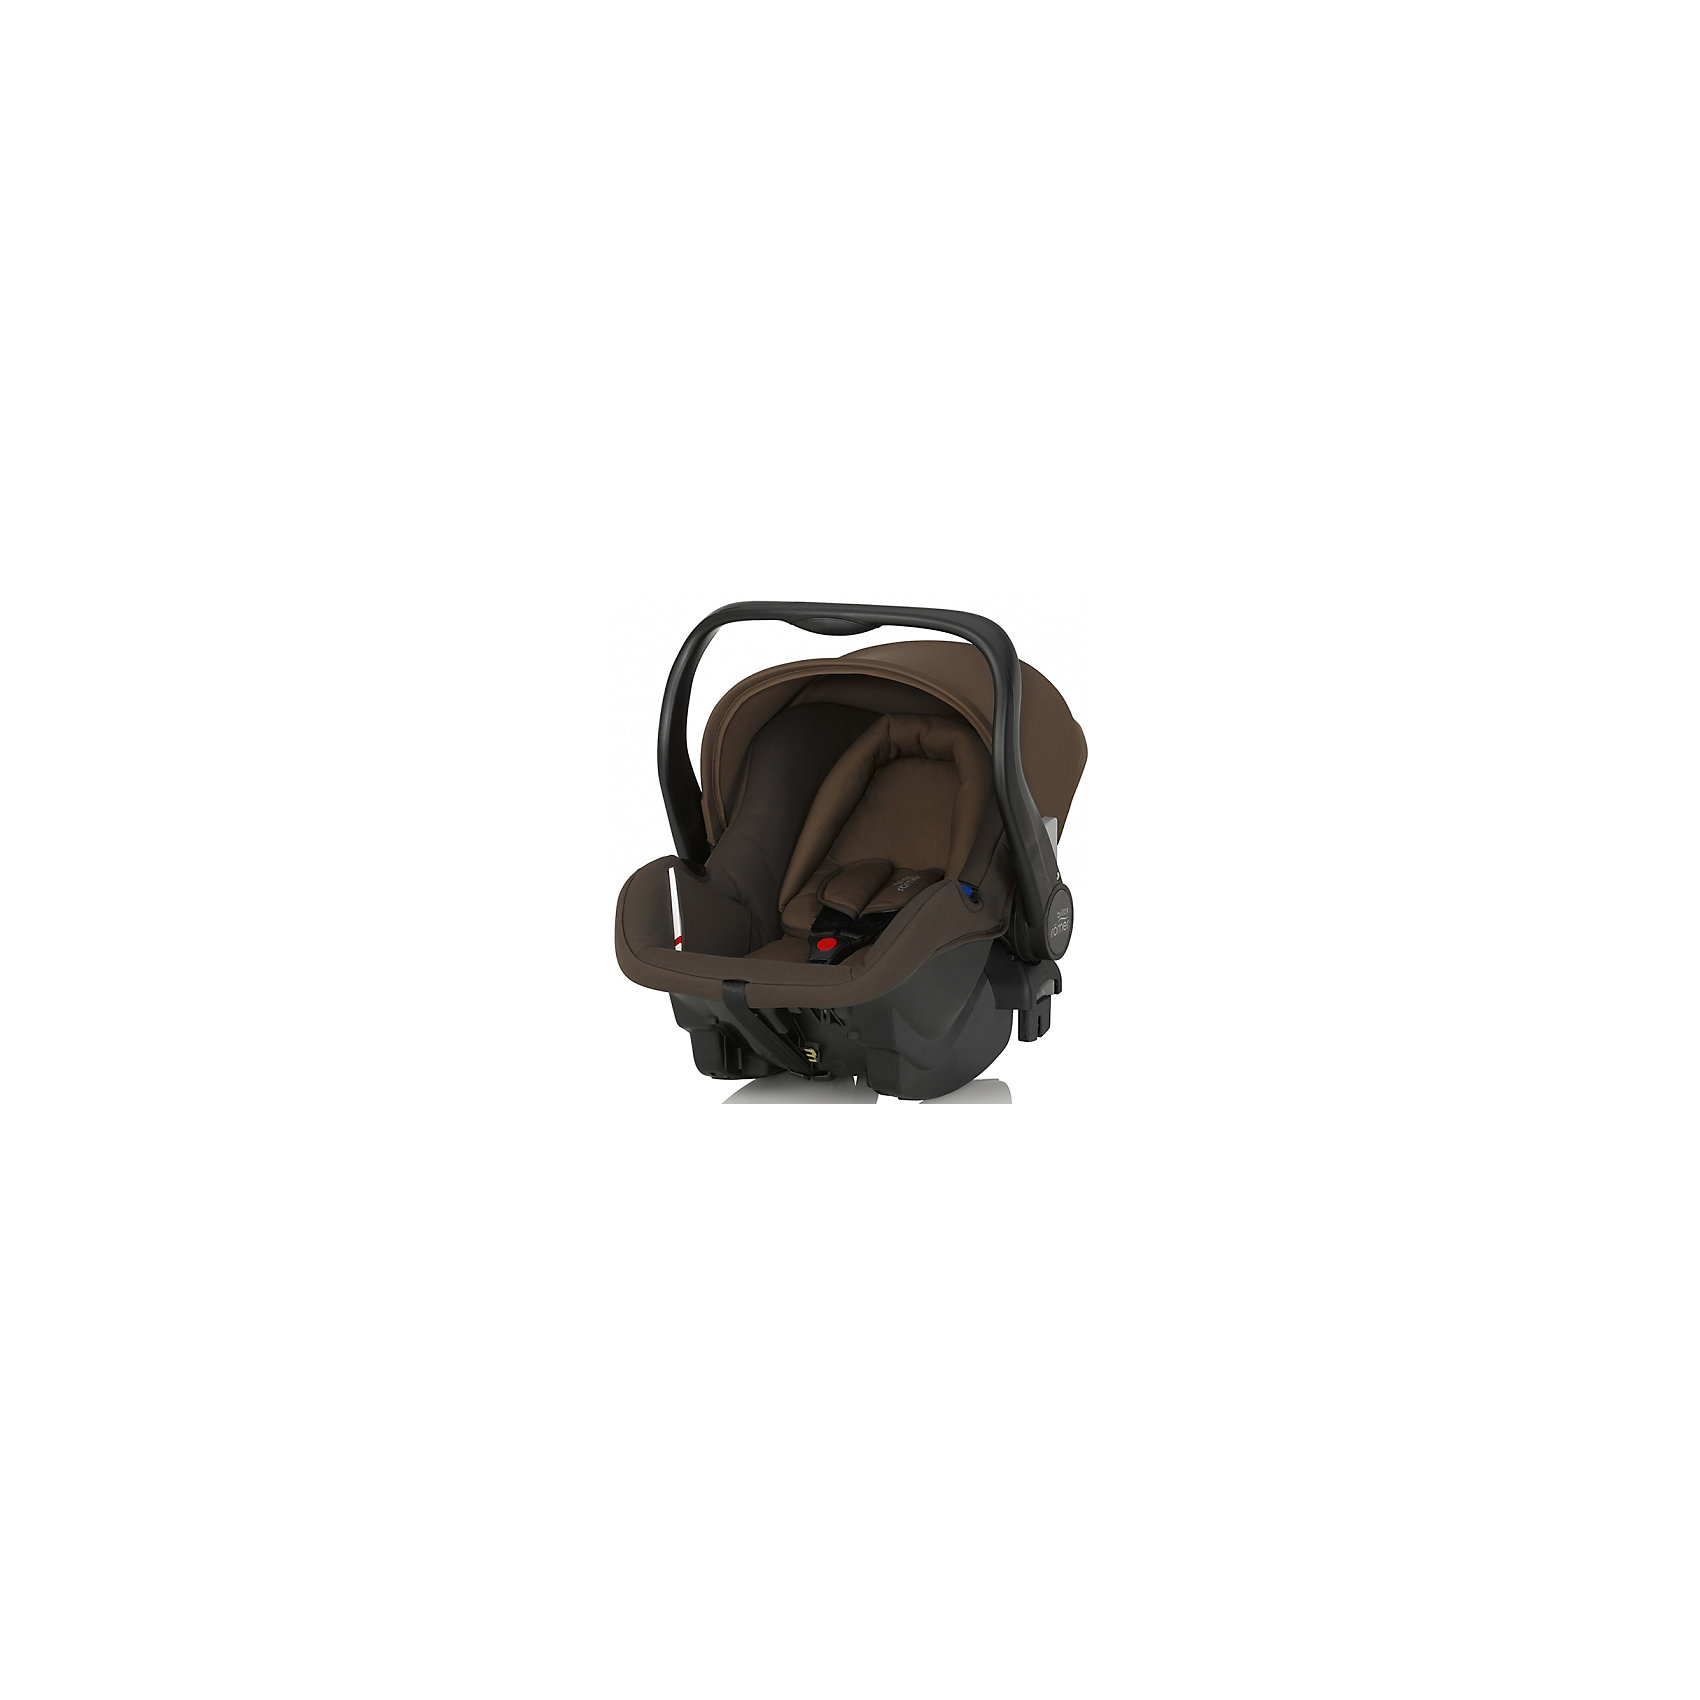 Britax Автокресло PRIMO, 0-13 кг., Britax Roemer, Wood Brown